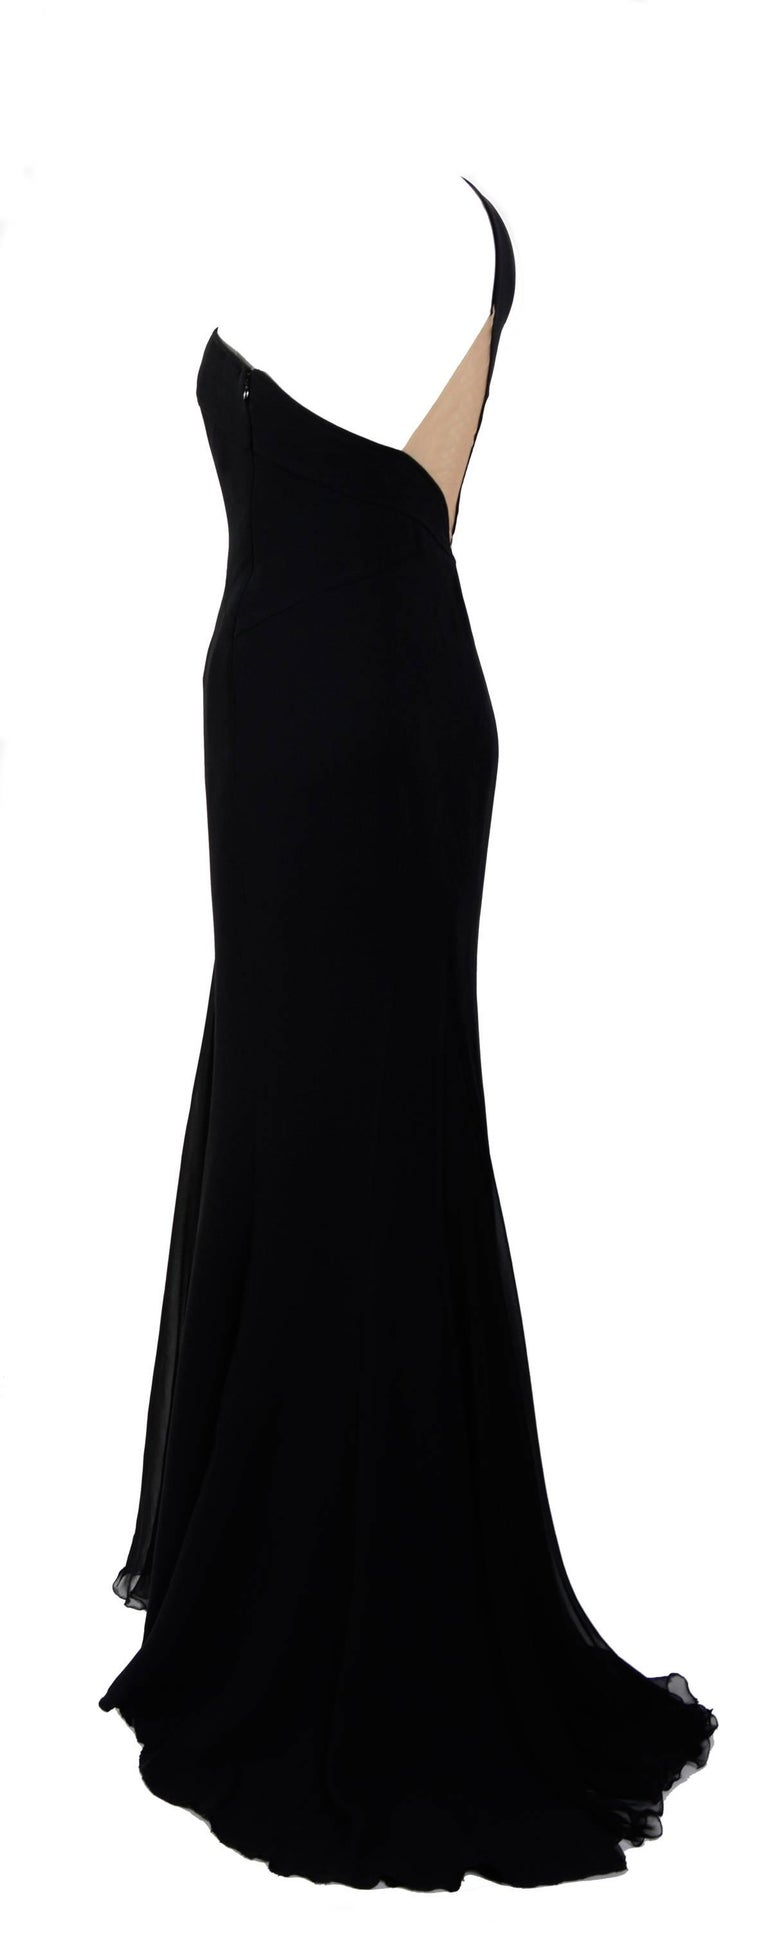 Gianni Versace black silk chiffon one shoulder open back gown, 1990s  In Excellent Condition For Sale In Antwerp, BE